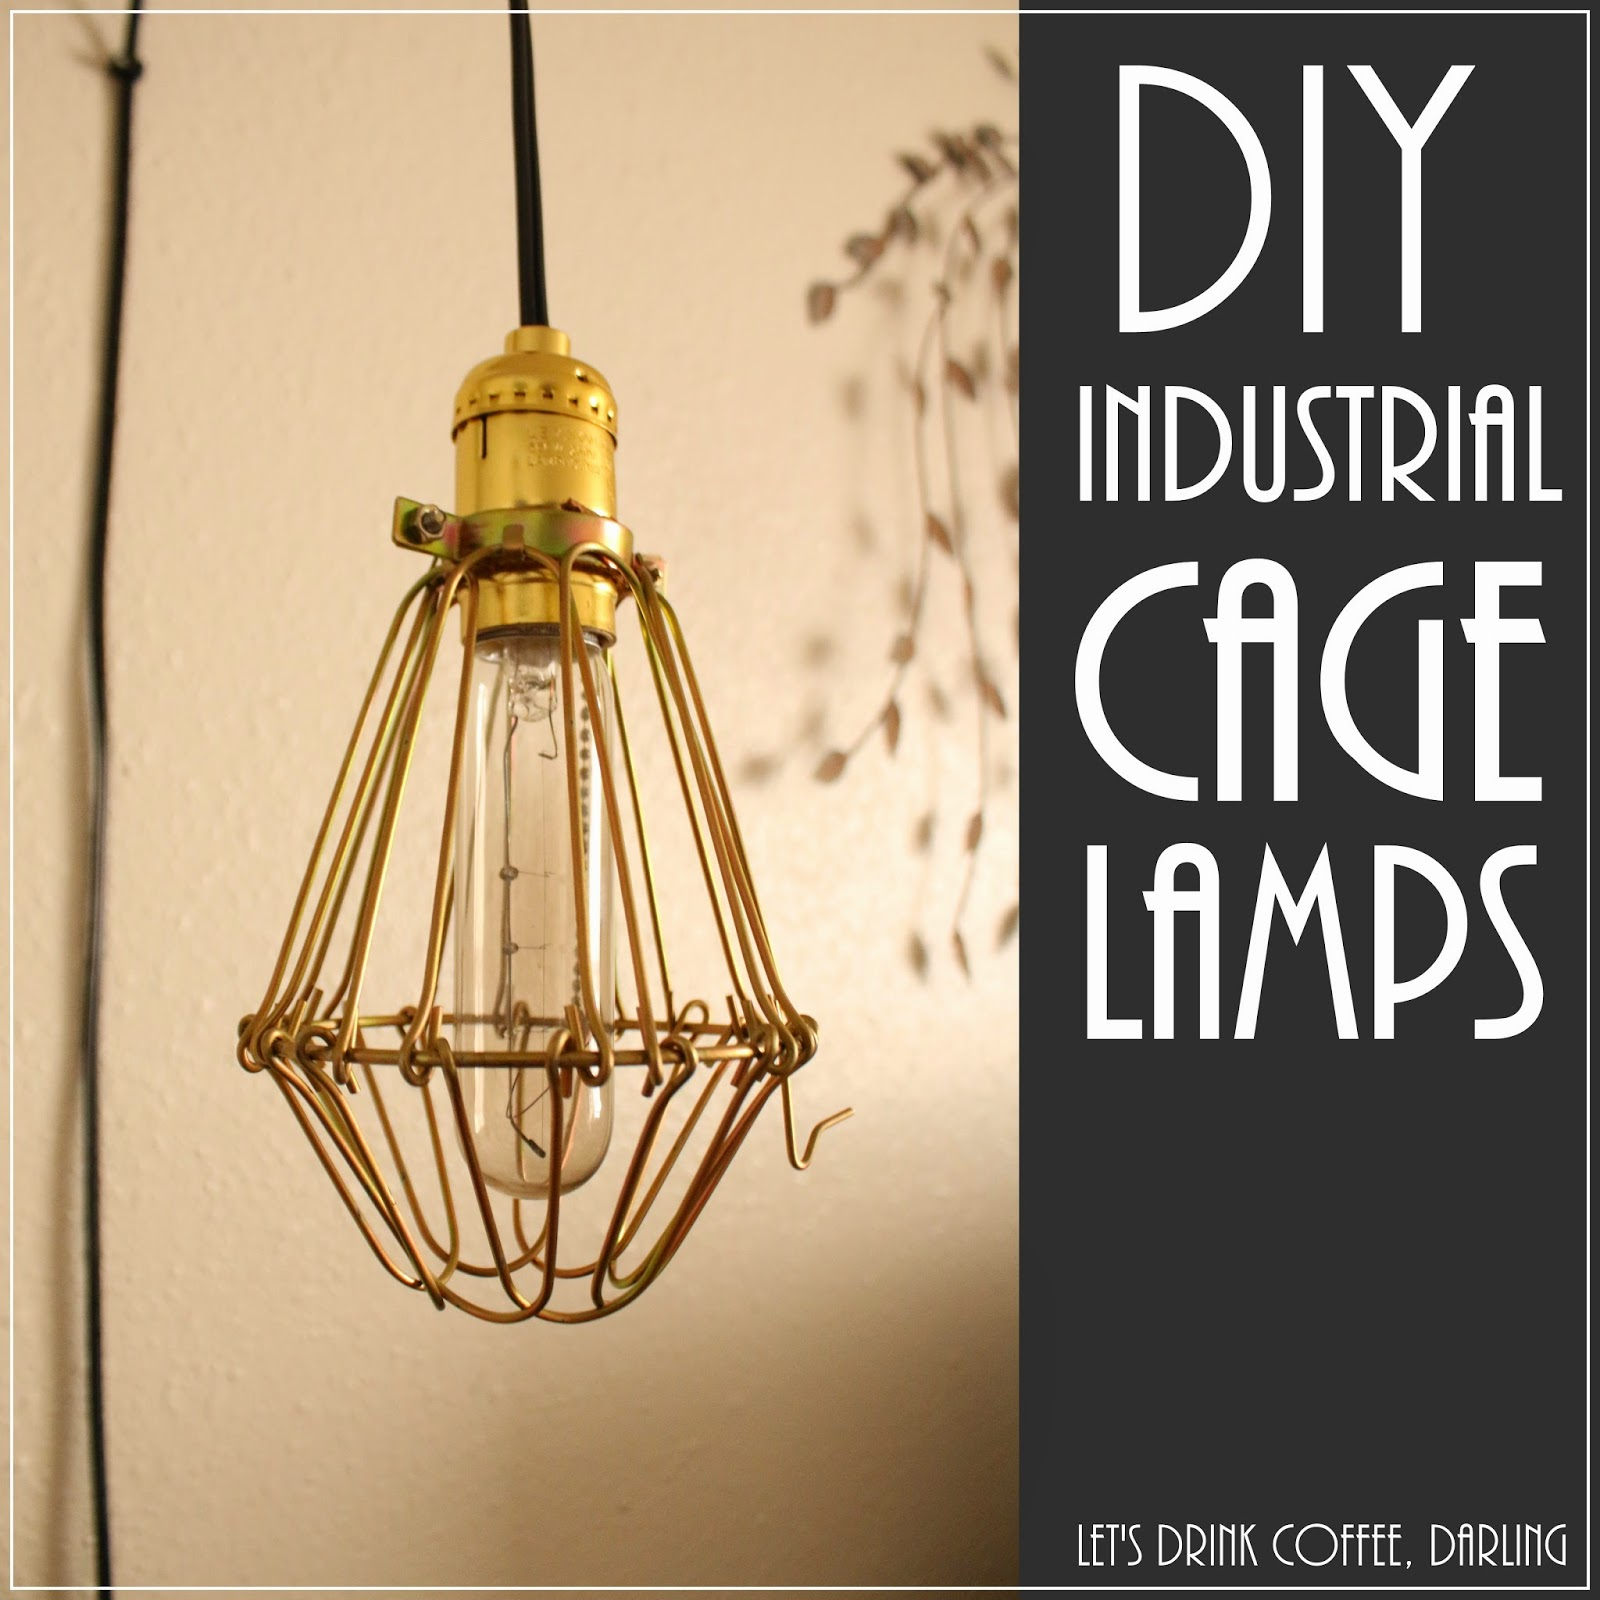 Lets drink coffee darling diy industrial cage lights diy industrial cage lights aloadofball Gallery